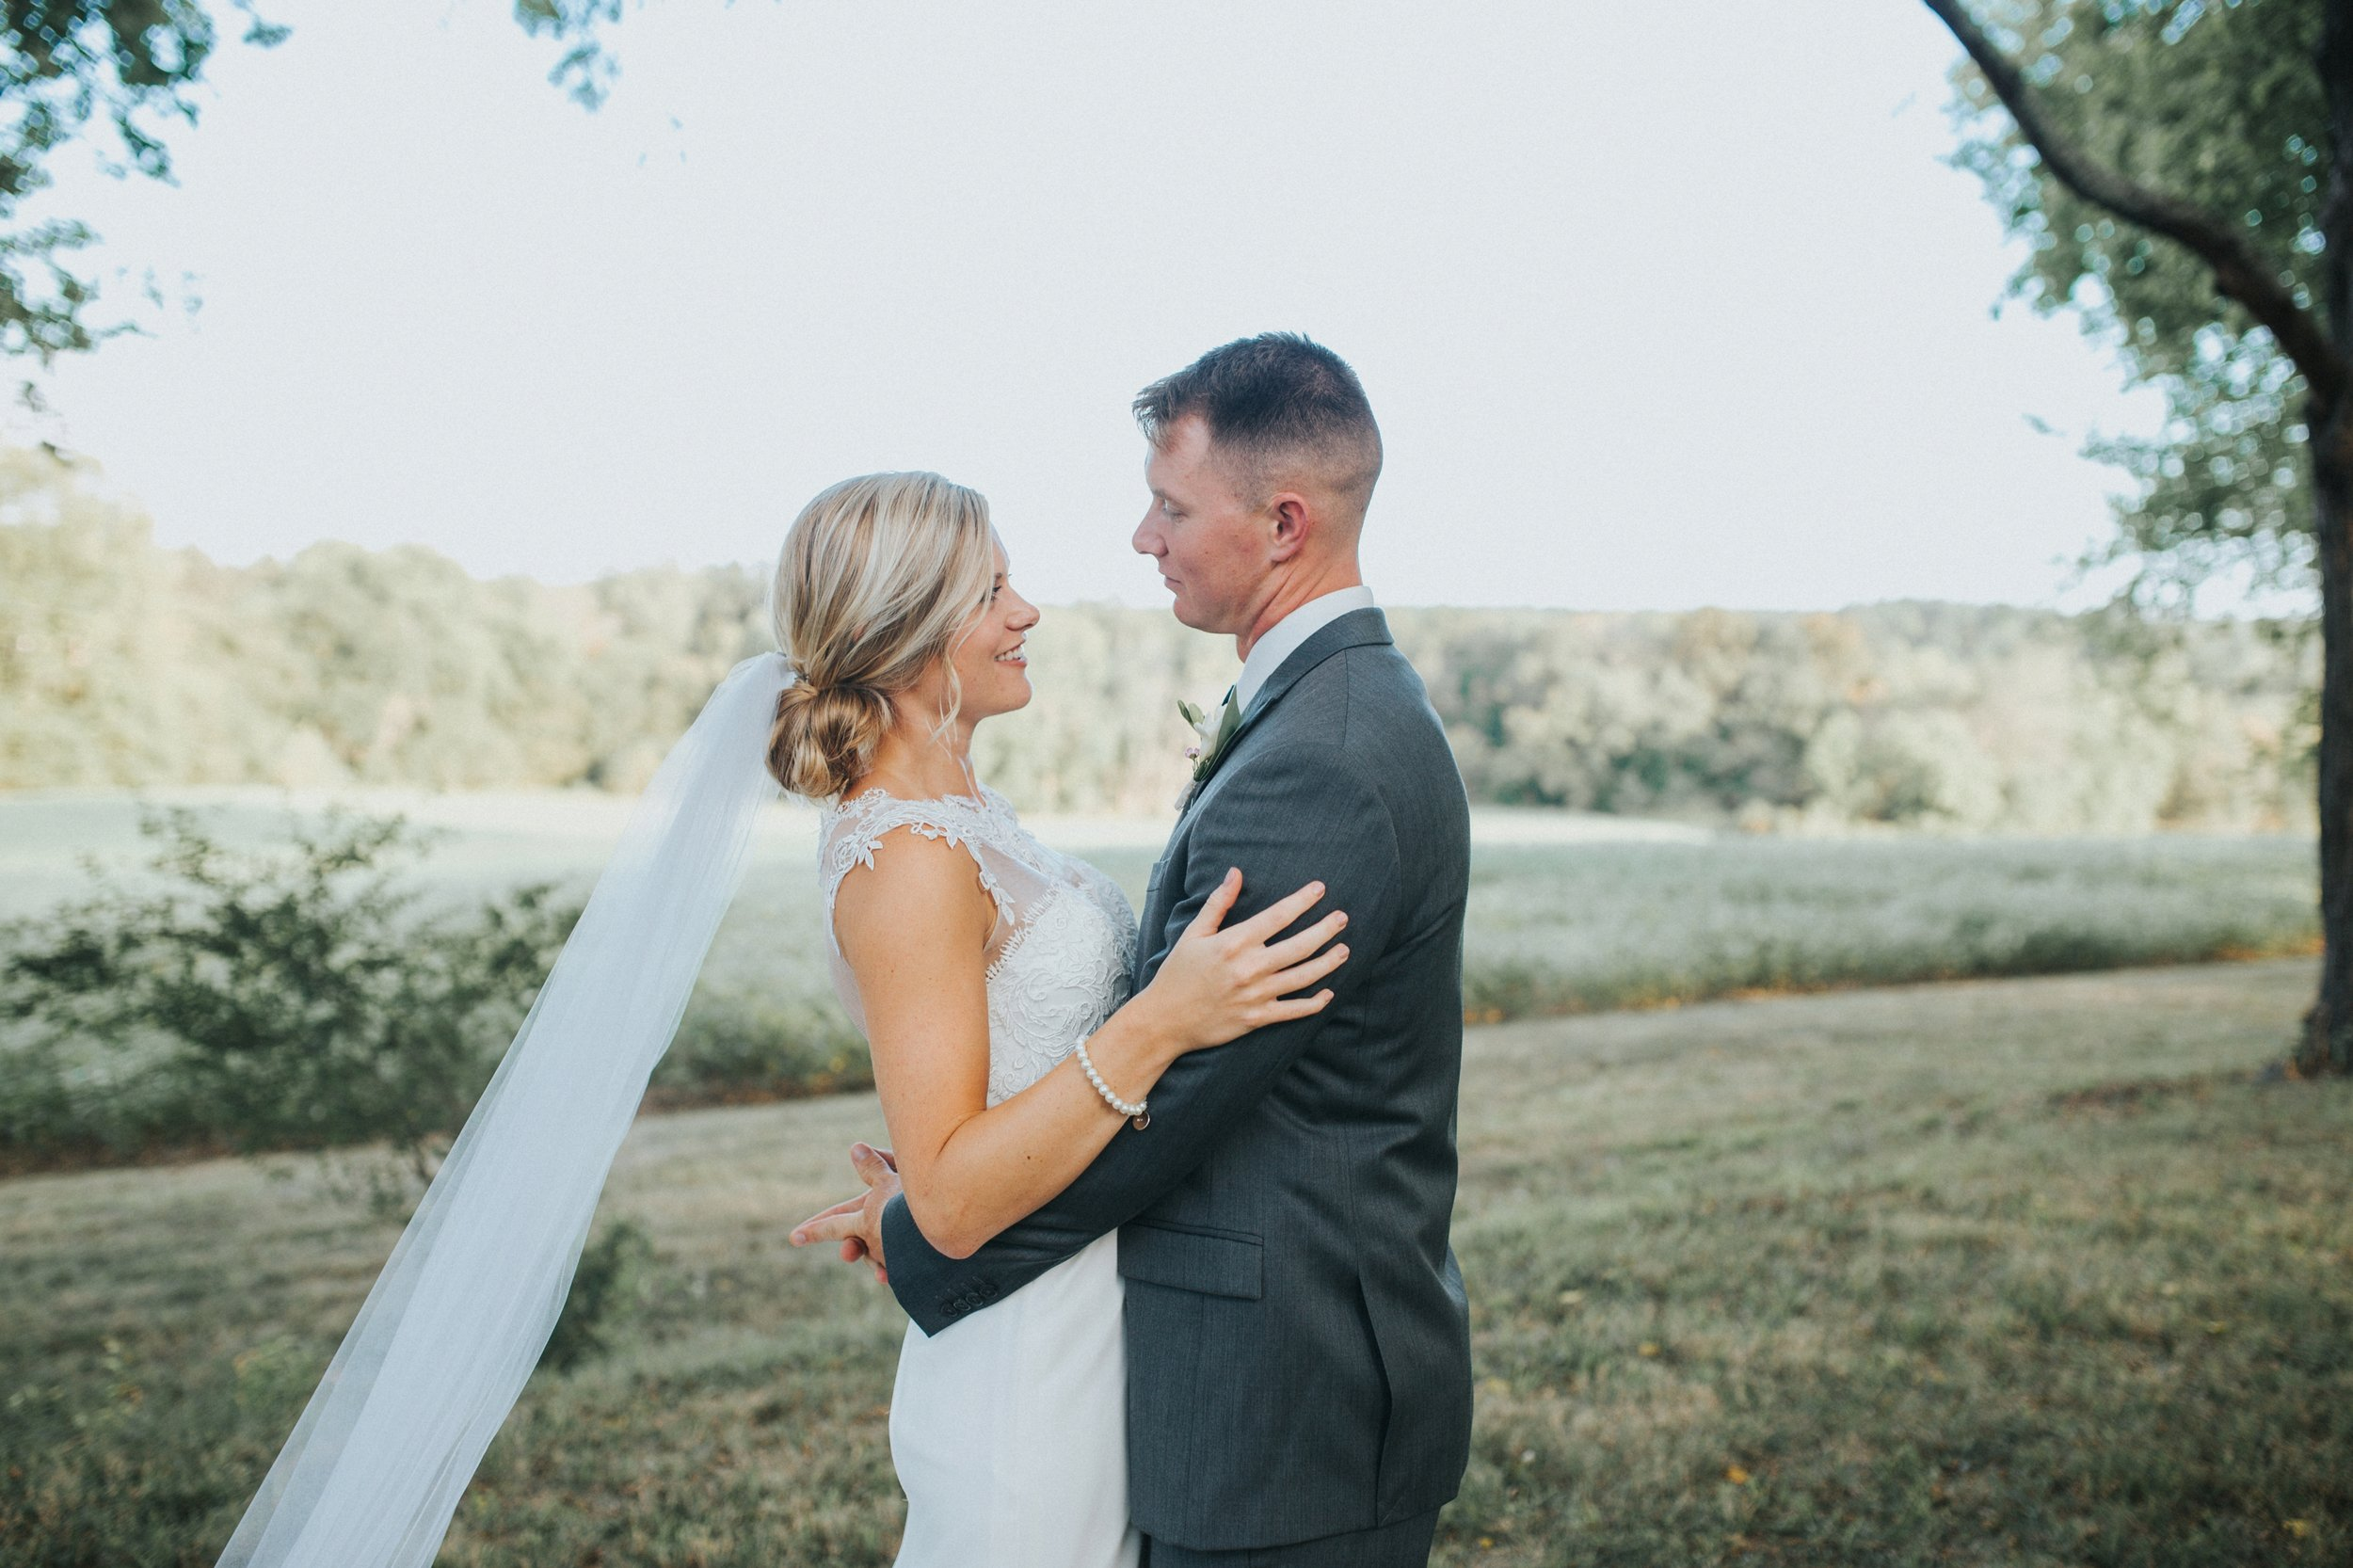 Virginia wedding photographer, Charlottesville wedding photographer, the hunt at Selma wedding, amelia virginia wedding photographer_0213.jpg